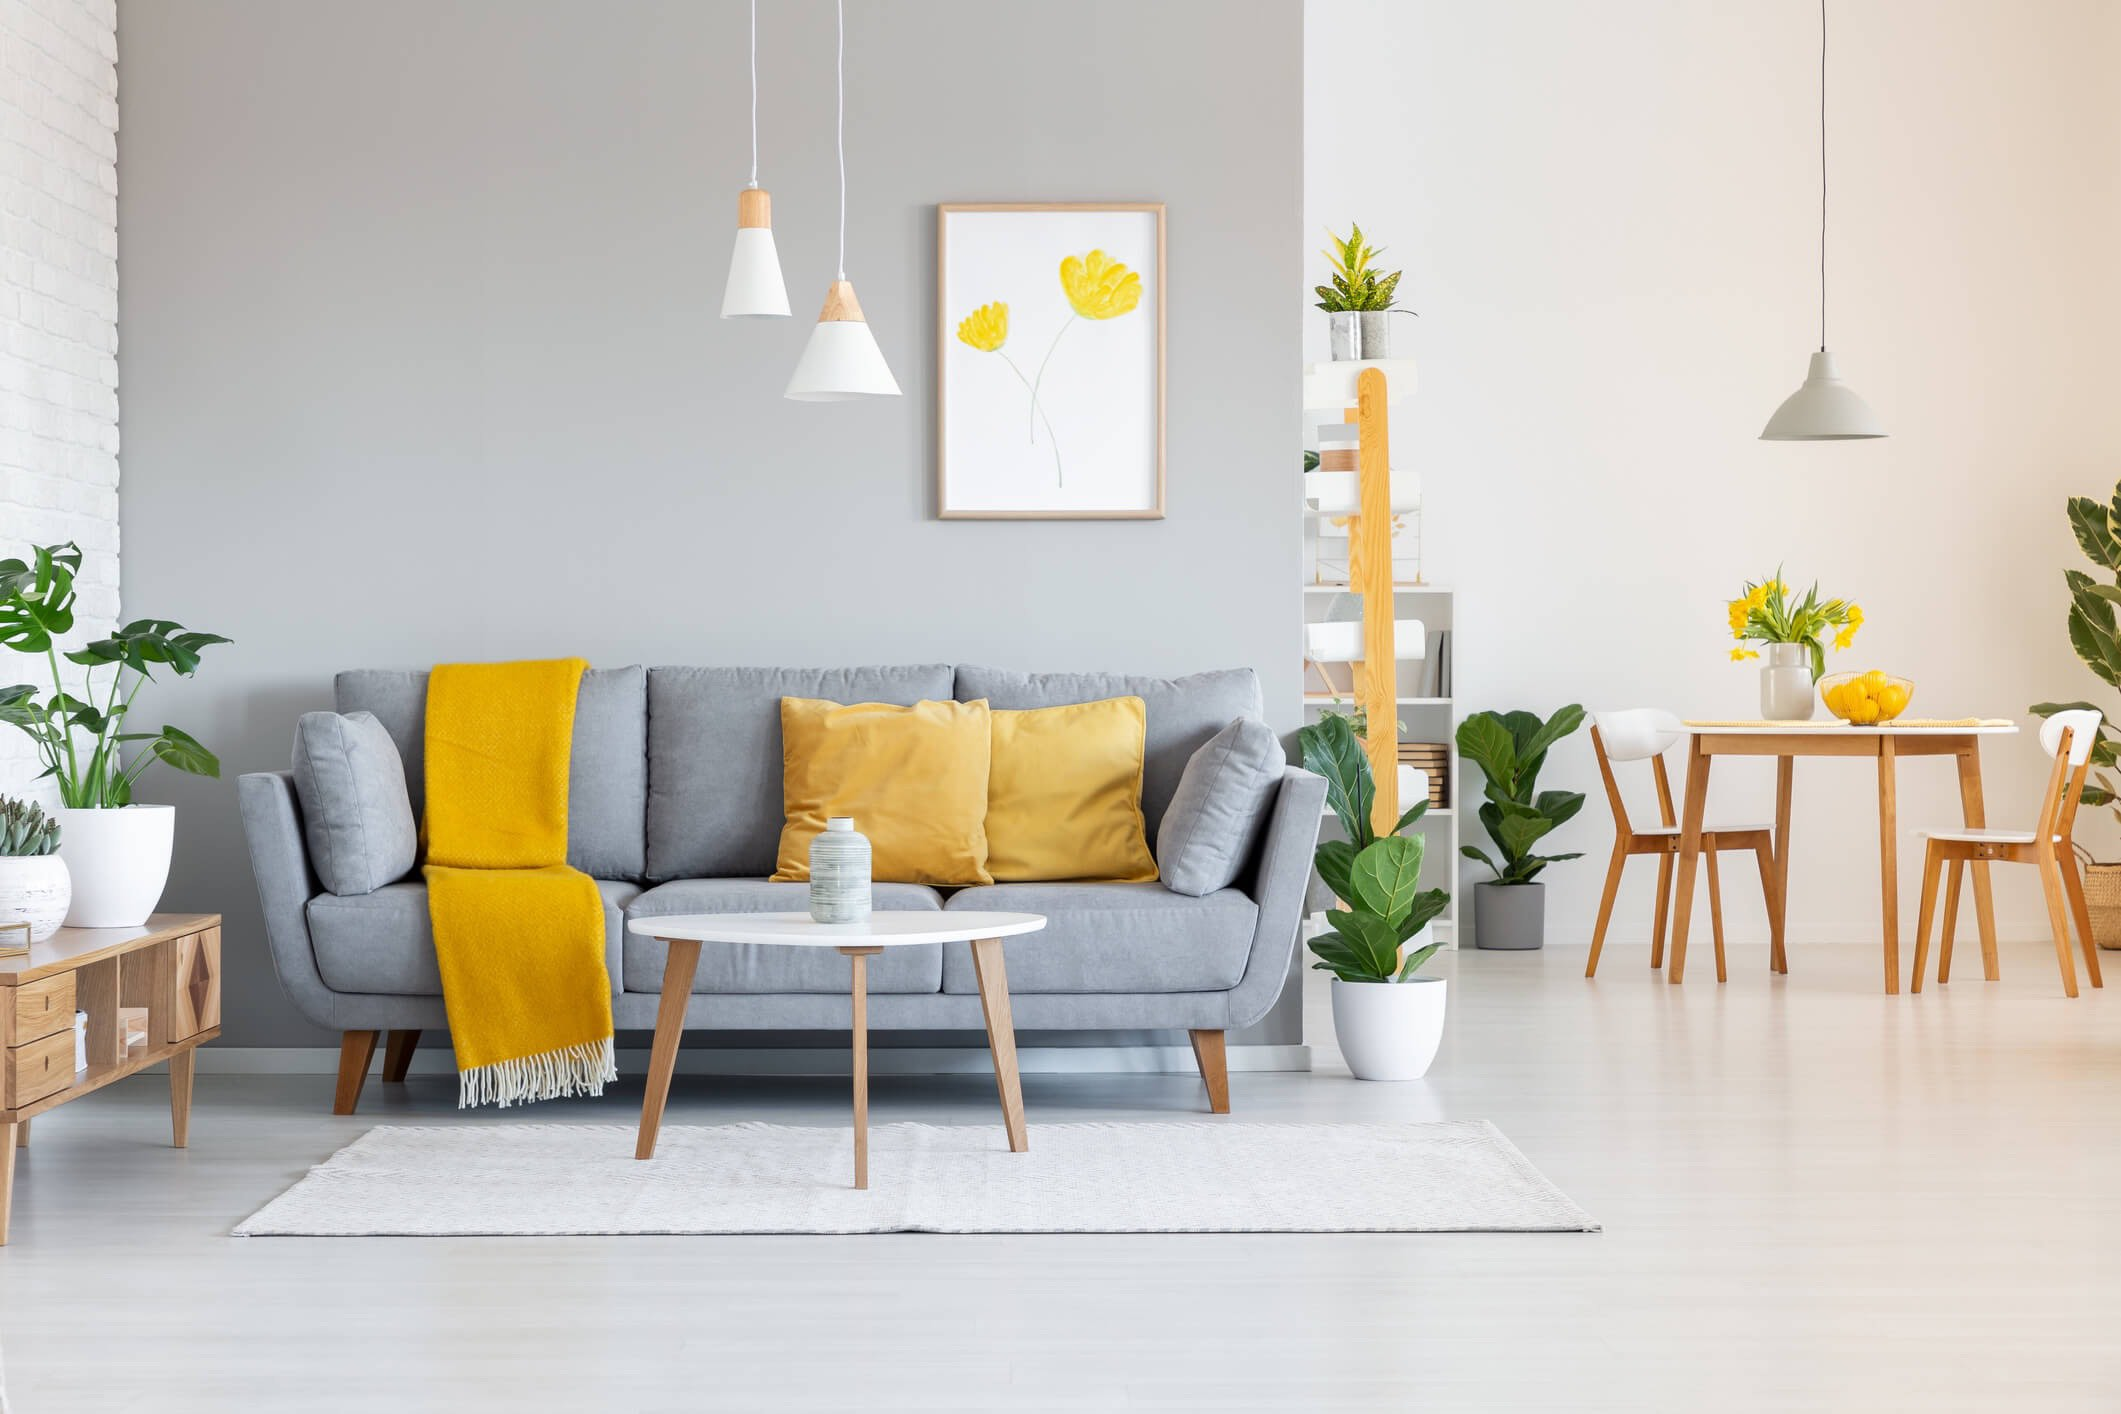 Five Ways to Use Upholstery Foam to Revamp Your Home